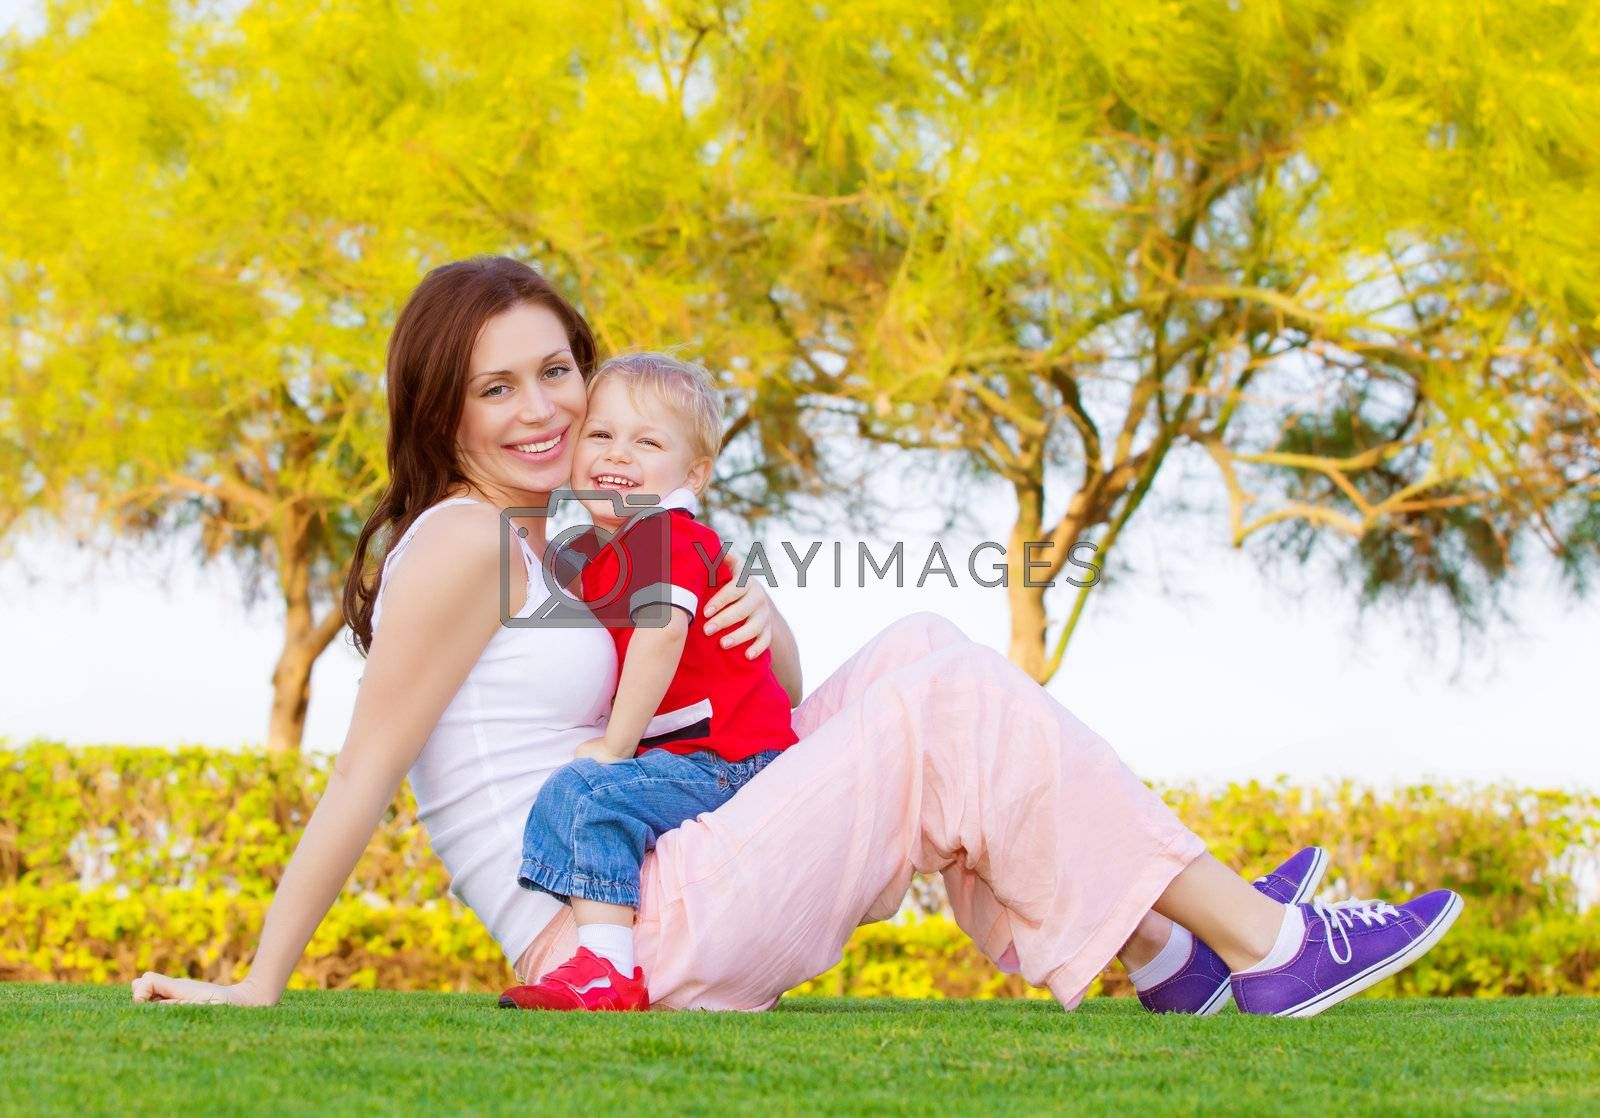 Picture of attractive woman with cute child sitting down on green grass in spring park, mother with son enjoying springtime nature, little boy with mom spending time outdoors, happy young family